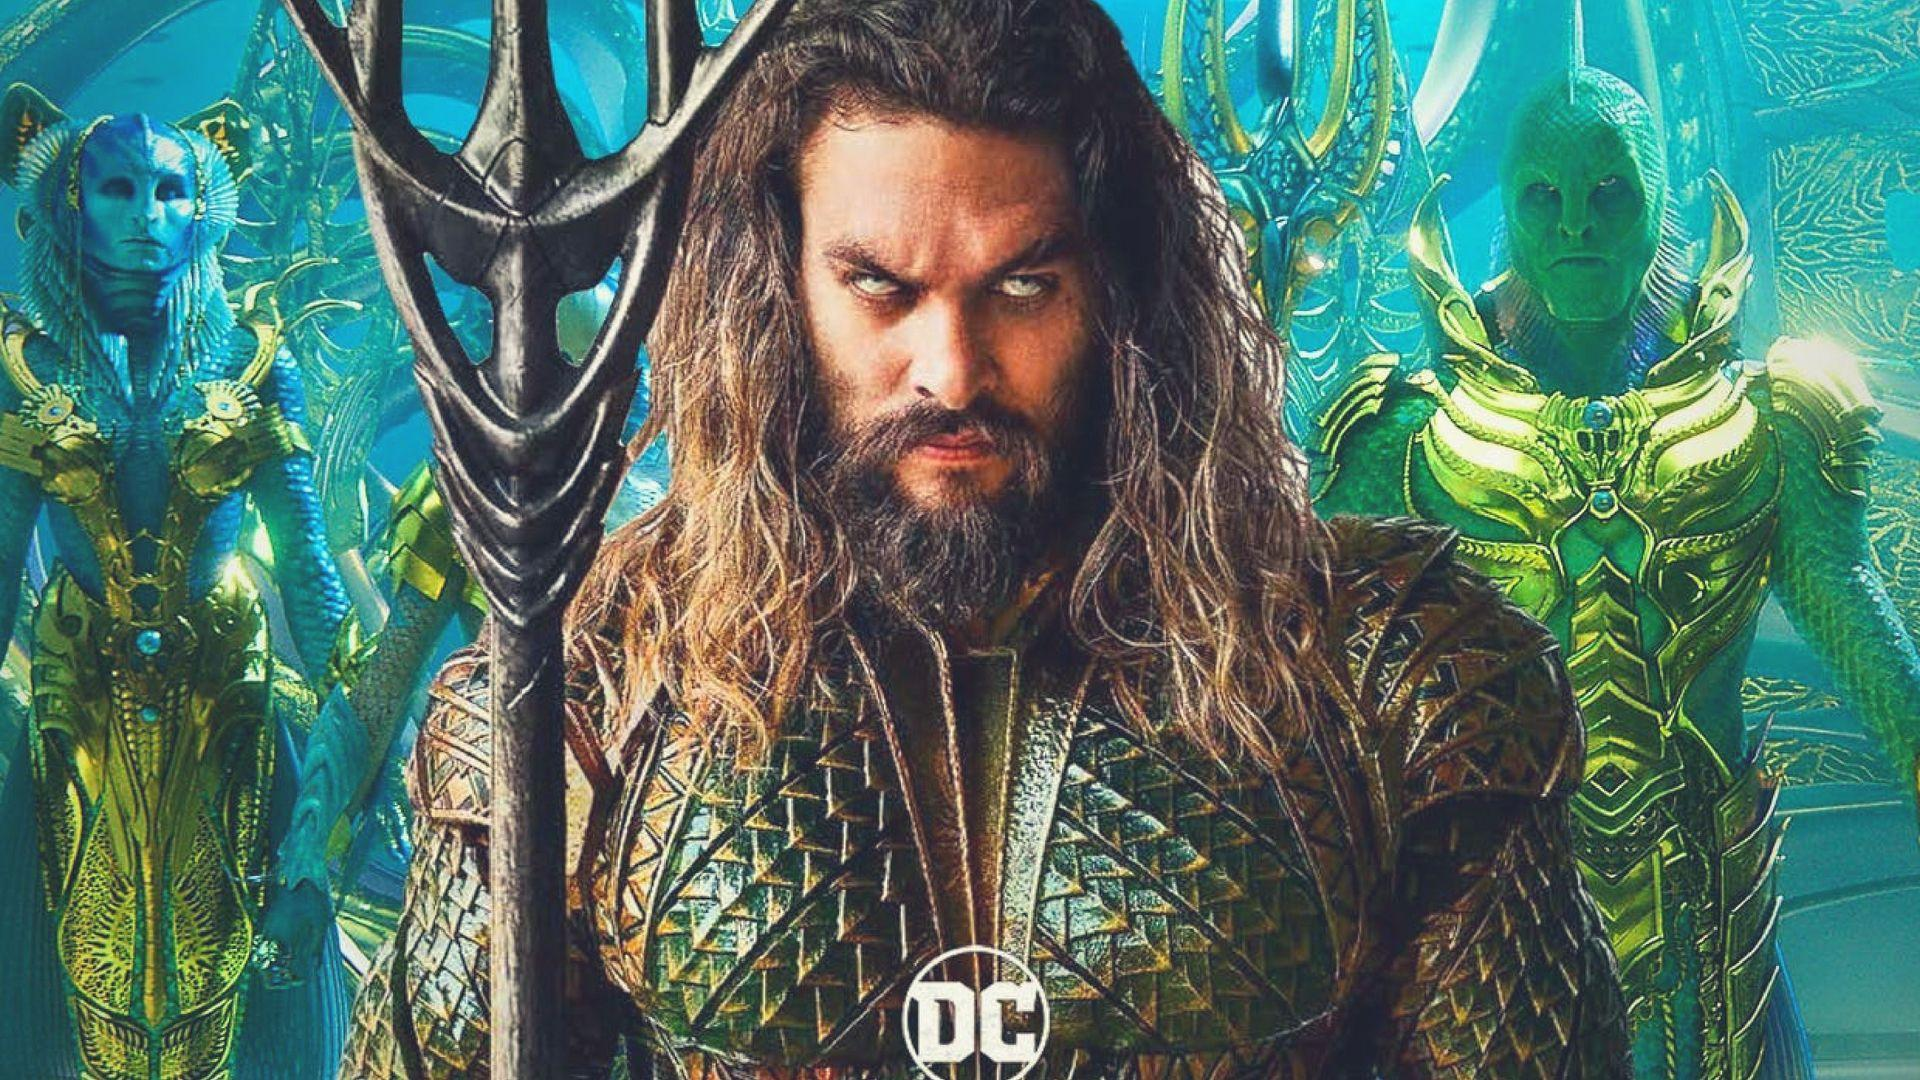 Aquaman Movie First look Pictures Poster HD Wallpaper Images